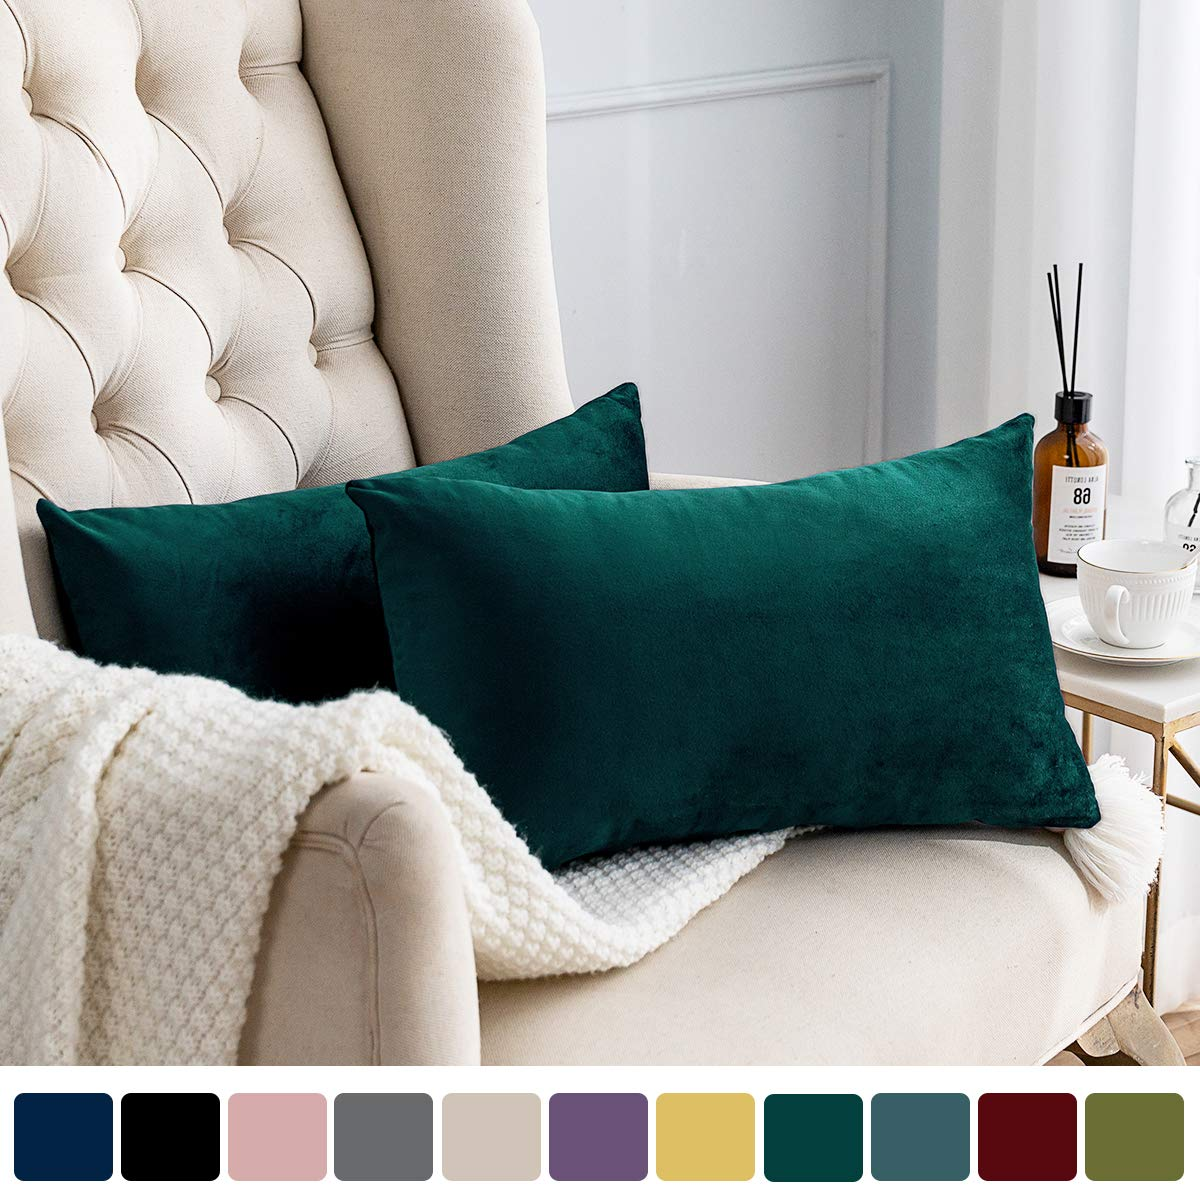 MUDILY Pack of 2 Velvet Soft Decorative Oblong Back Protecting Throw Pillow Covers Cushion Pillowcase for Sofa Chair Bedroom Car, Teal 12 x 20 Inch 30 x 50 cm